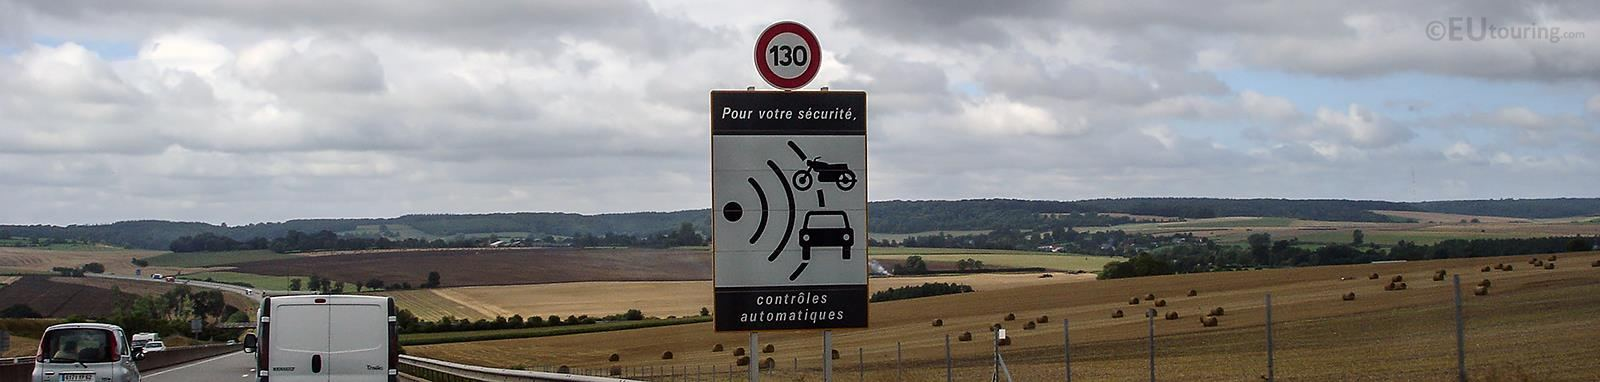 General Regulations For Driving In France